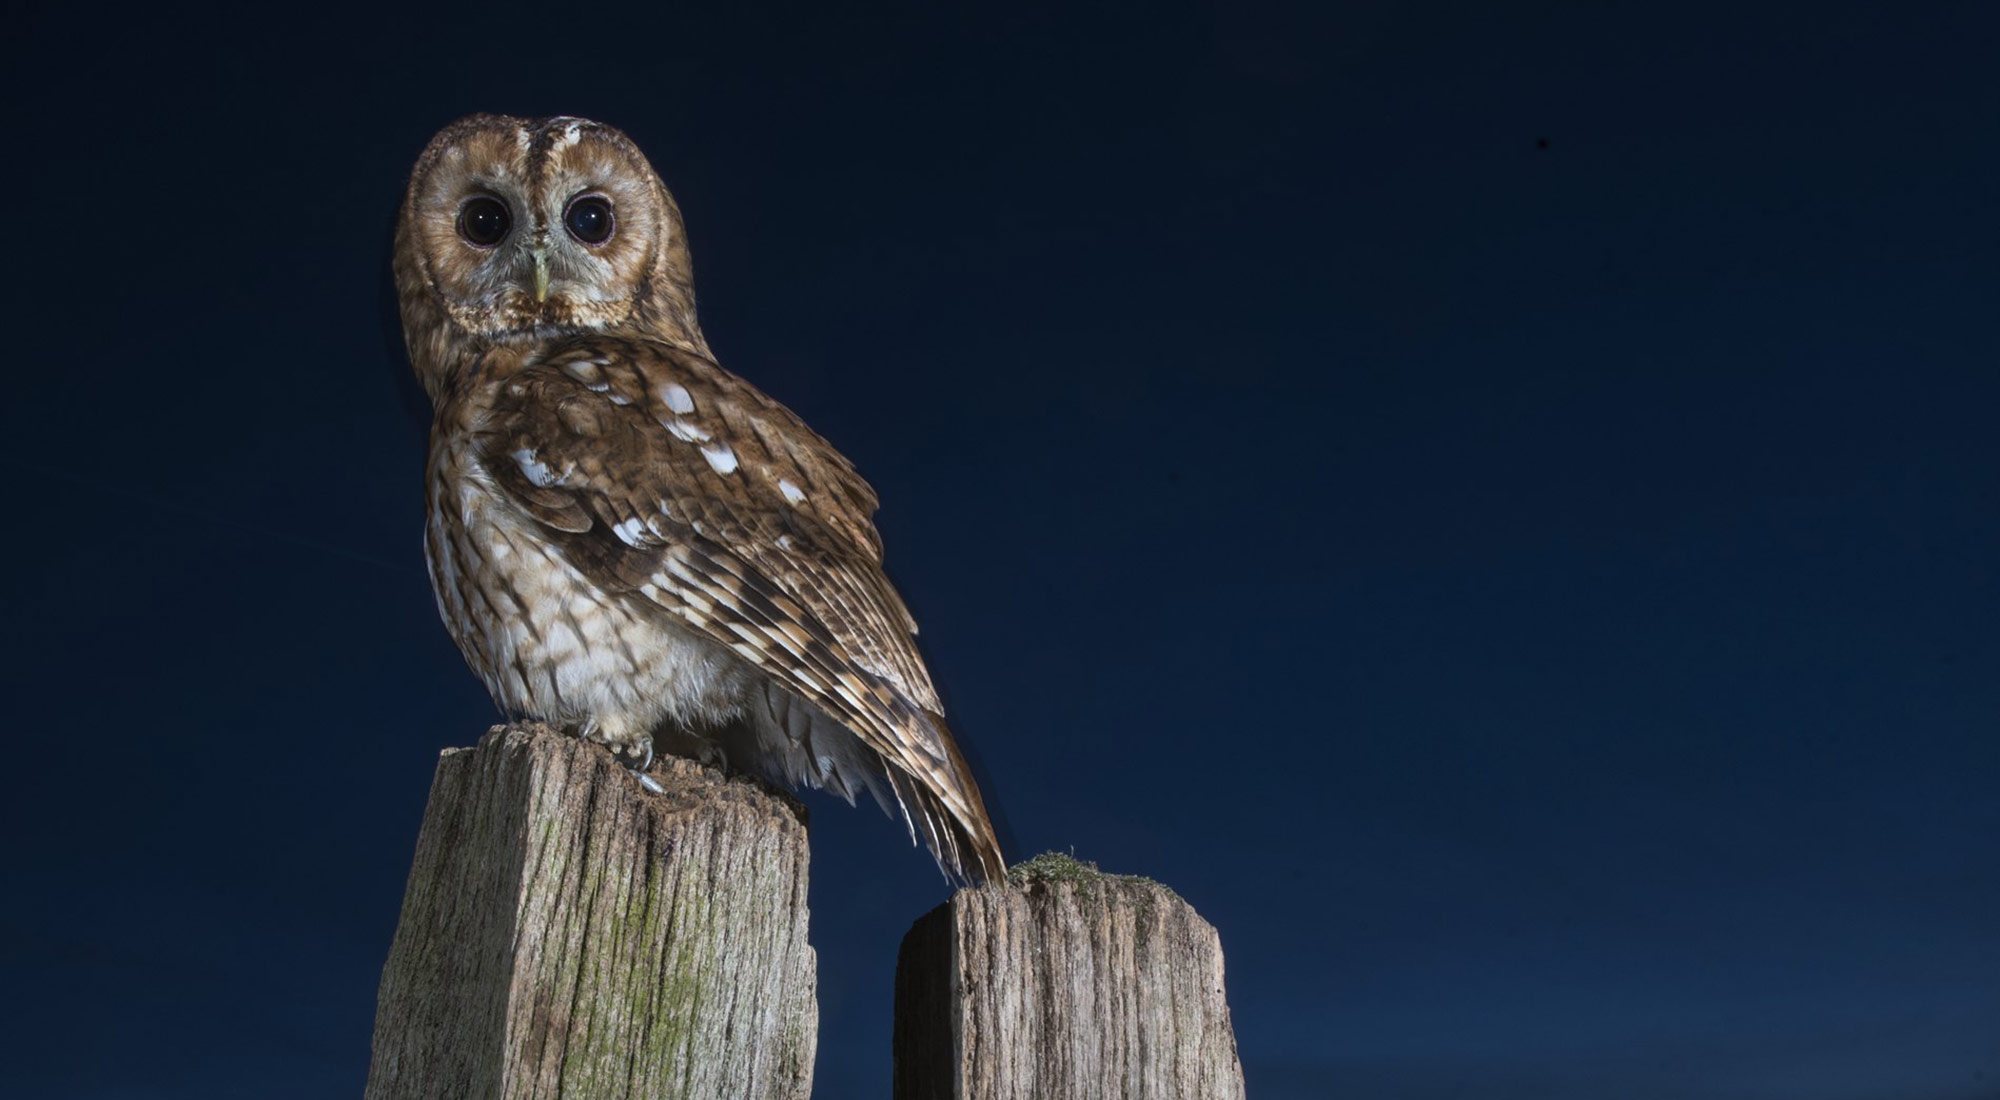 Wildlife Photography Hides Hide photography Bourne Lincolnshire tawny owl dusk tom robinson gate post perched baited long spring exposure wireless remote release wide angle